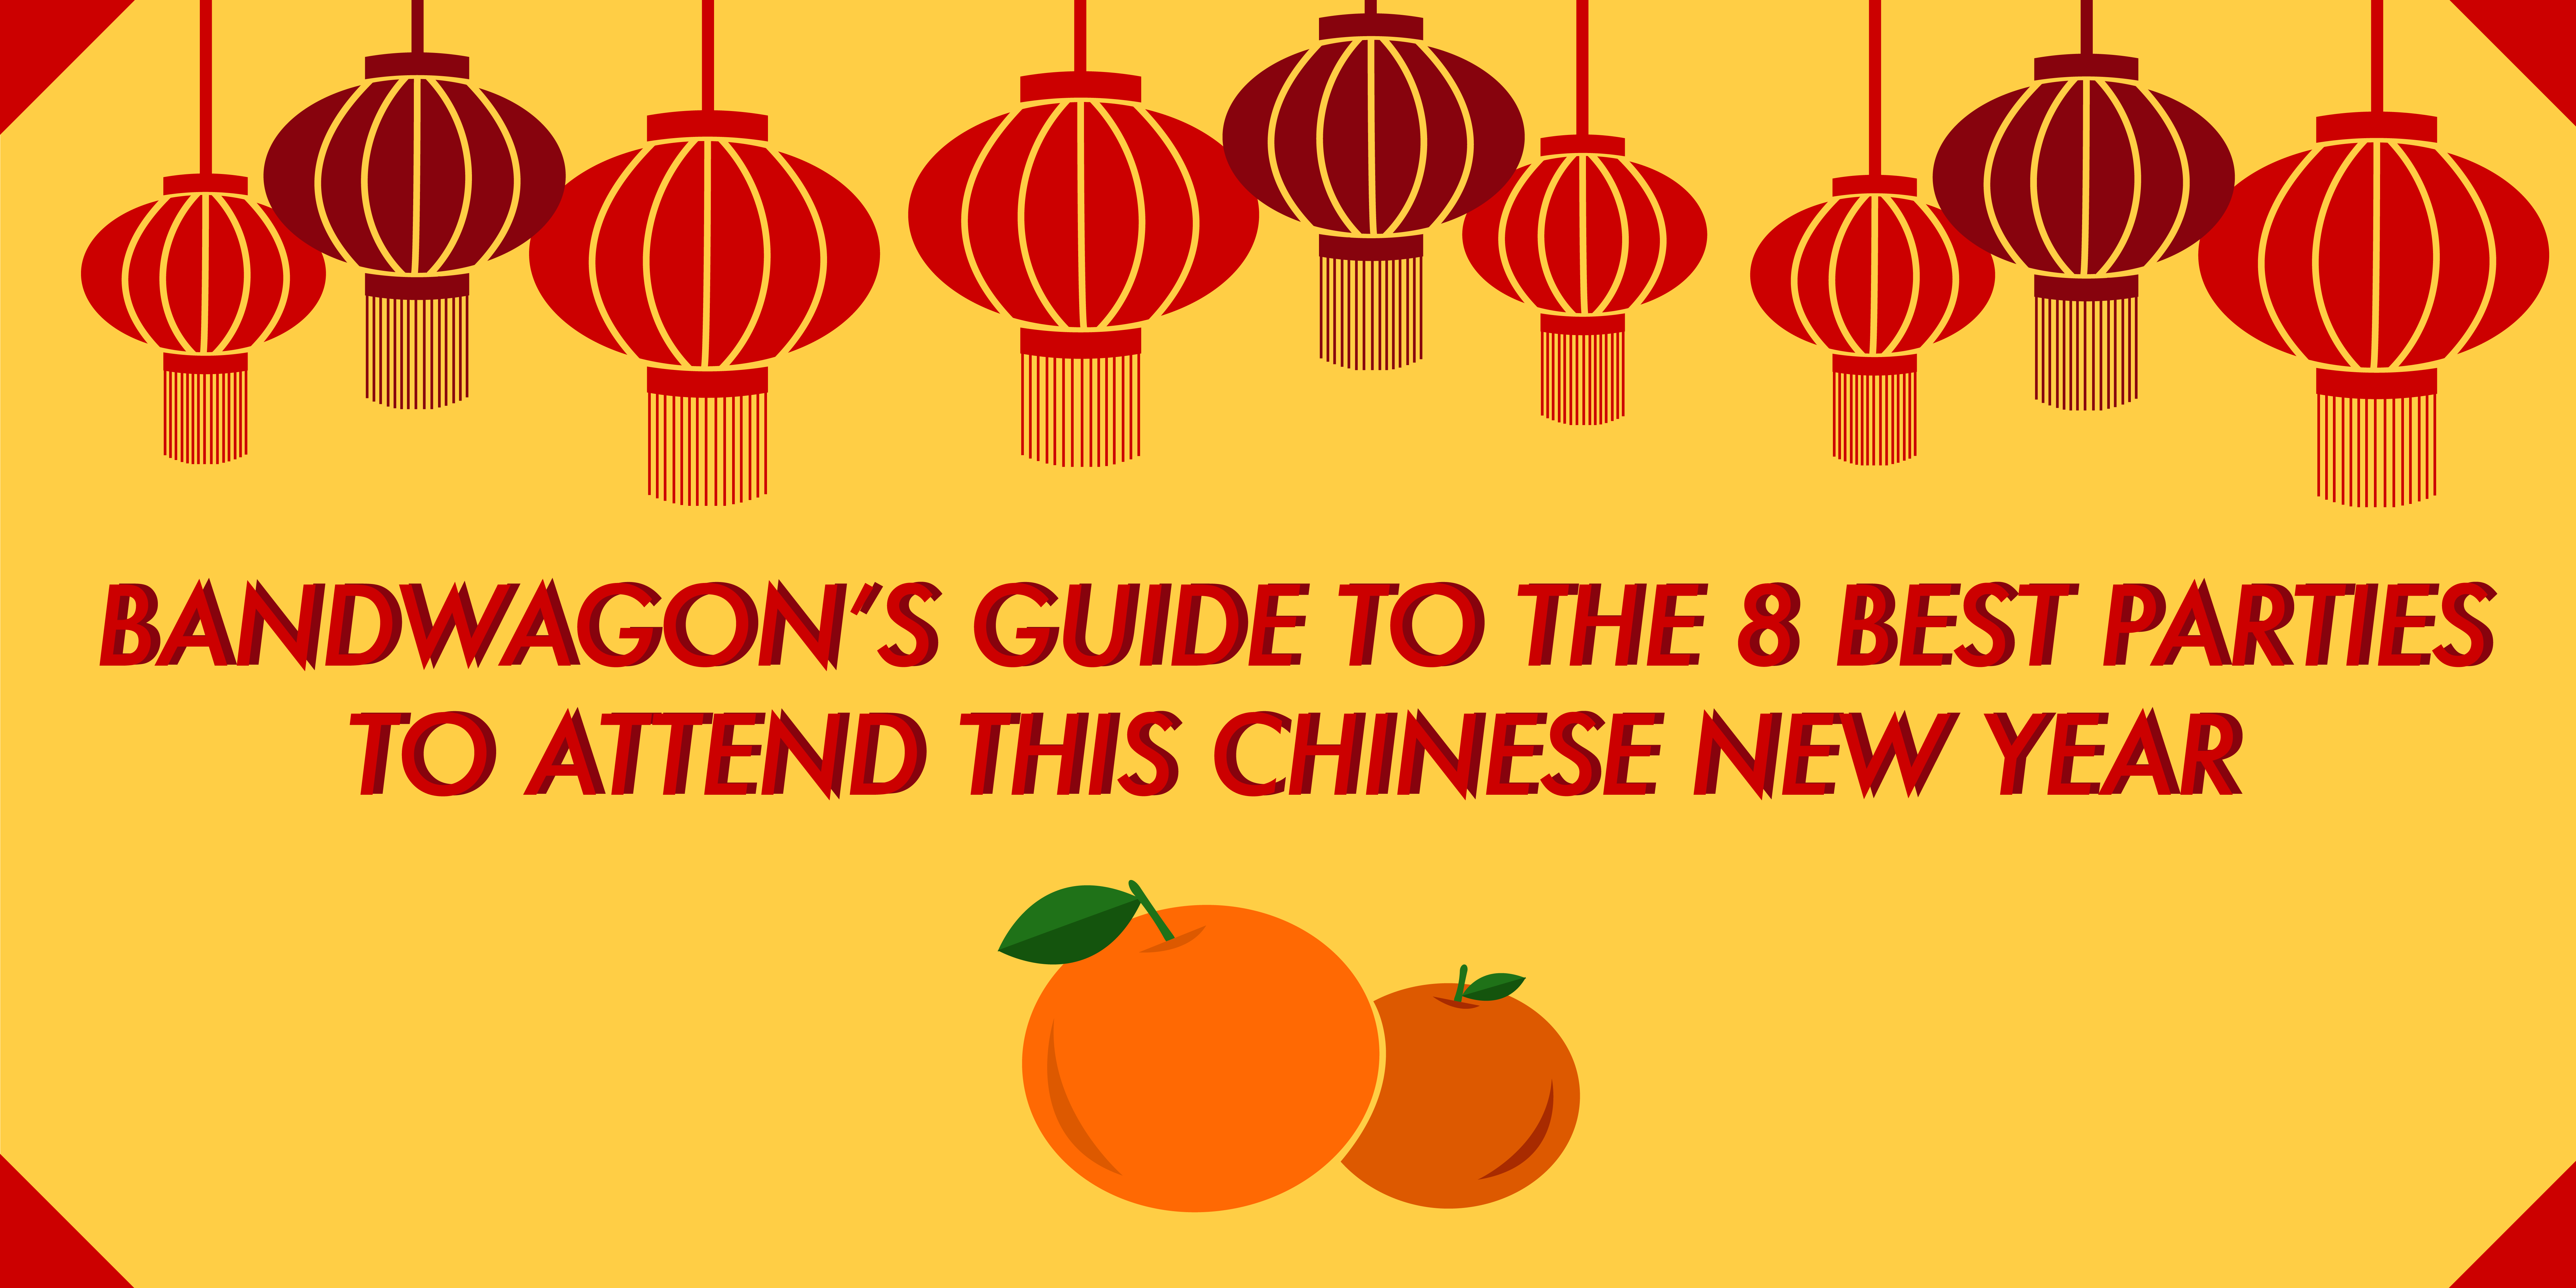 Bandwagon's guide to the 8 best parties to attend this Chinese New Year